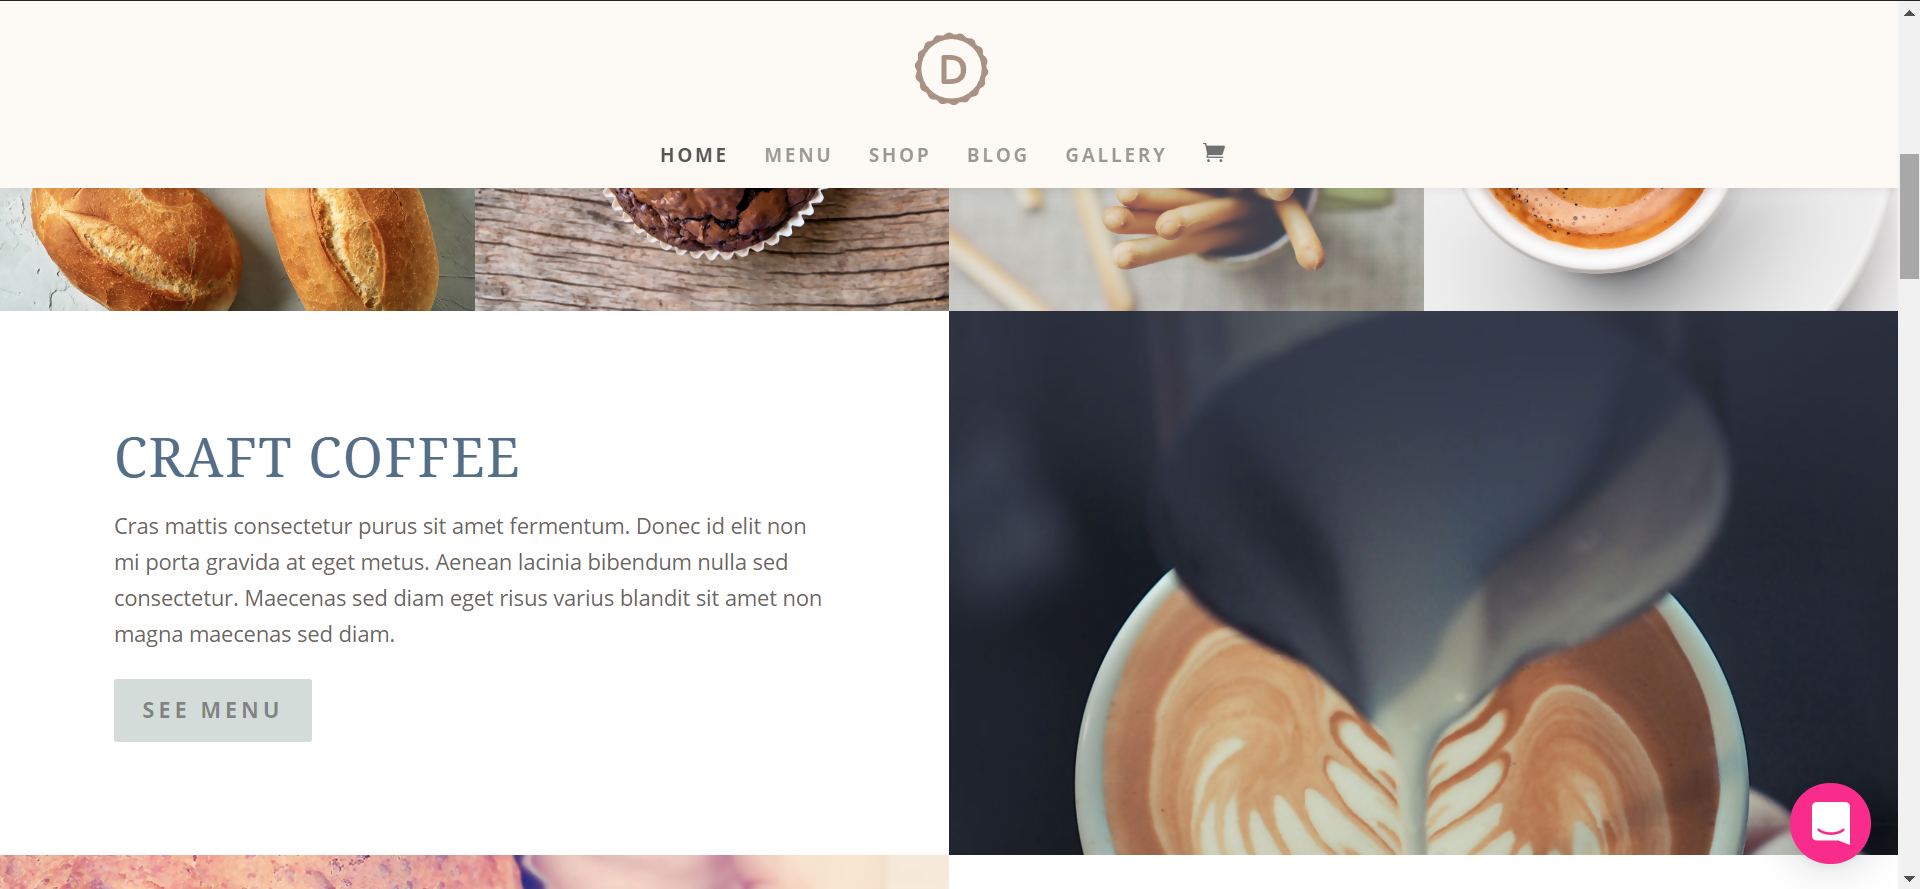 Flat Design for Your WordPress Site: What Is It + 4 WordPress Flat Design Themes